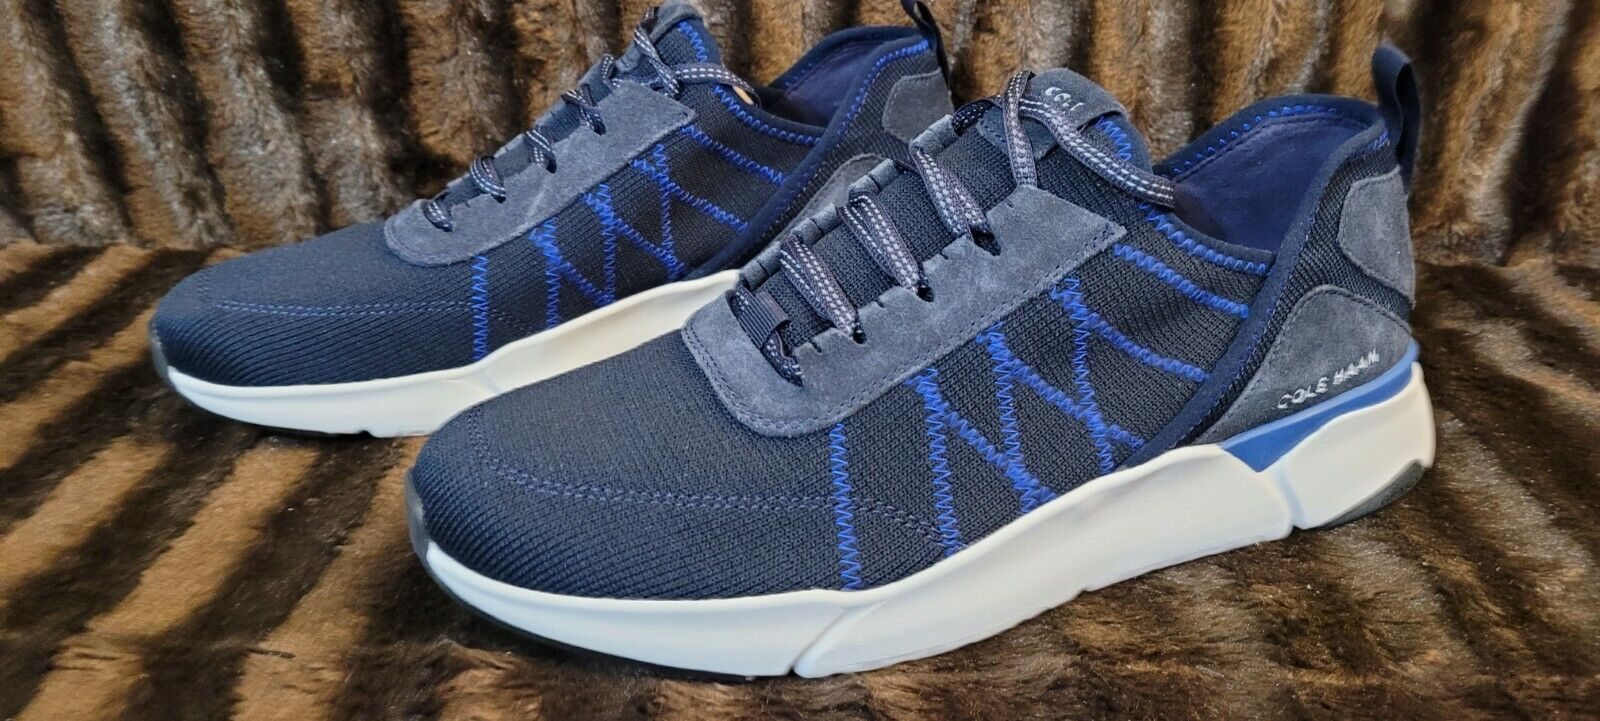 NEW Cole Haan Grand Sport Blue Knit Trainers Men's Size 11.5 ⭐⭐